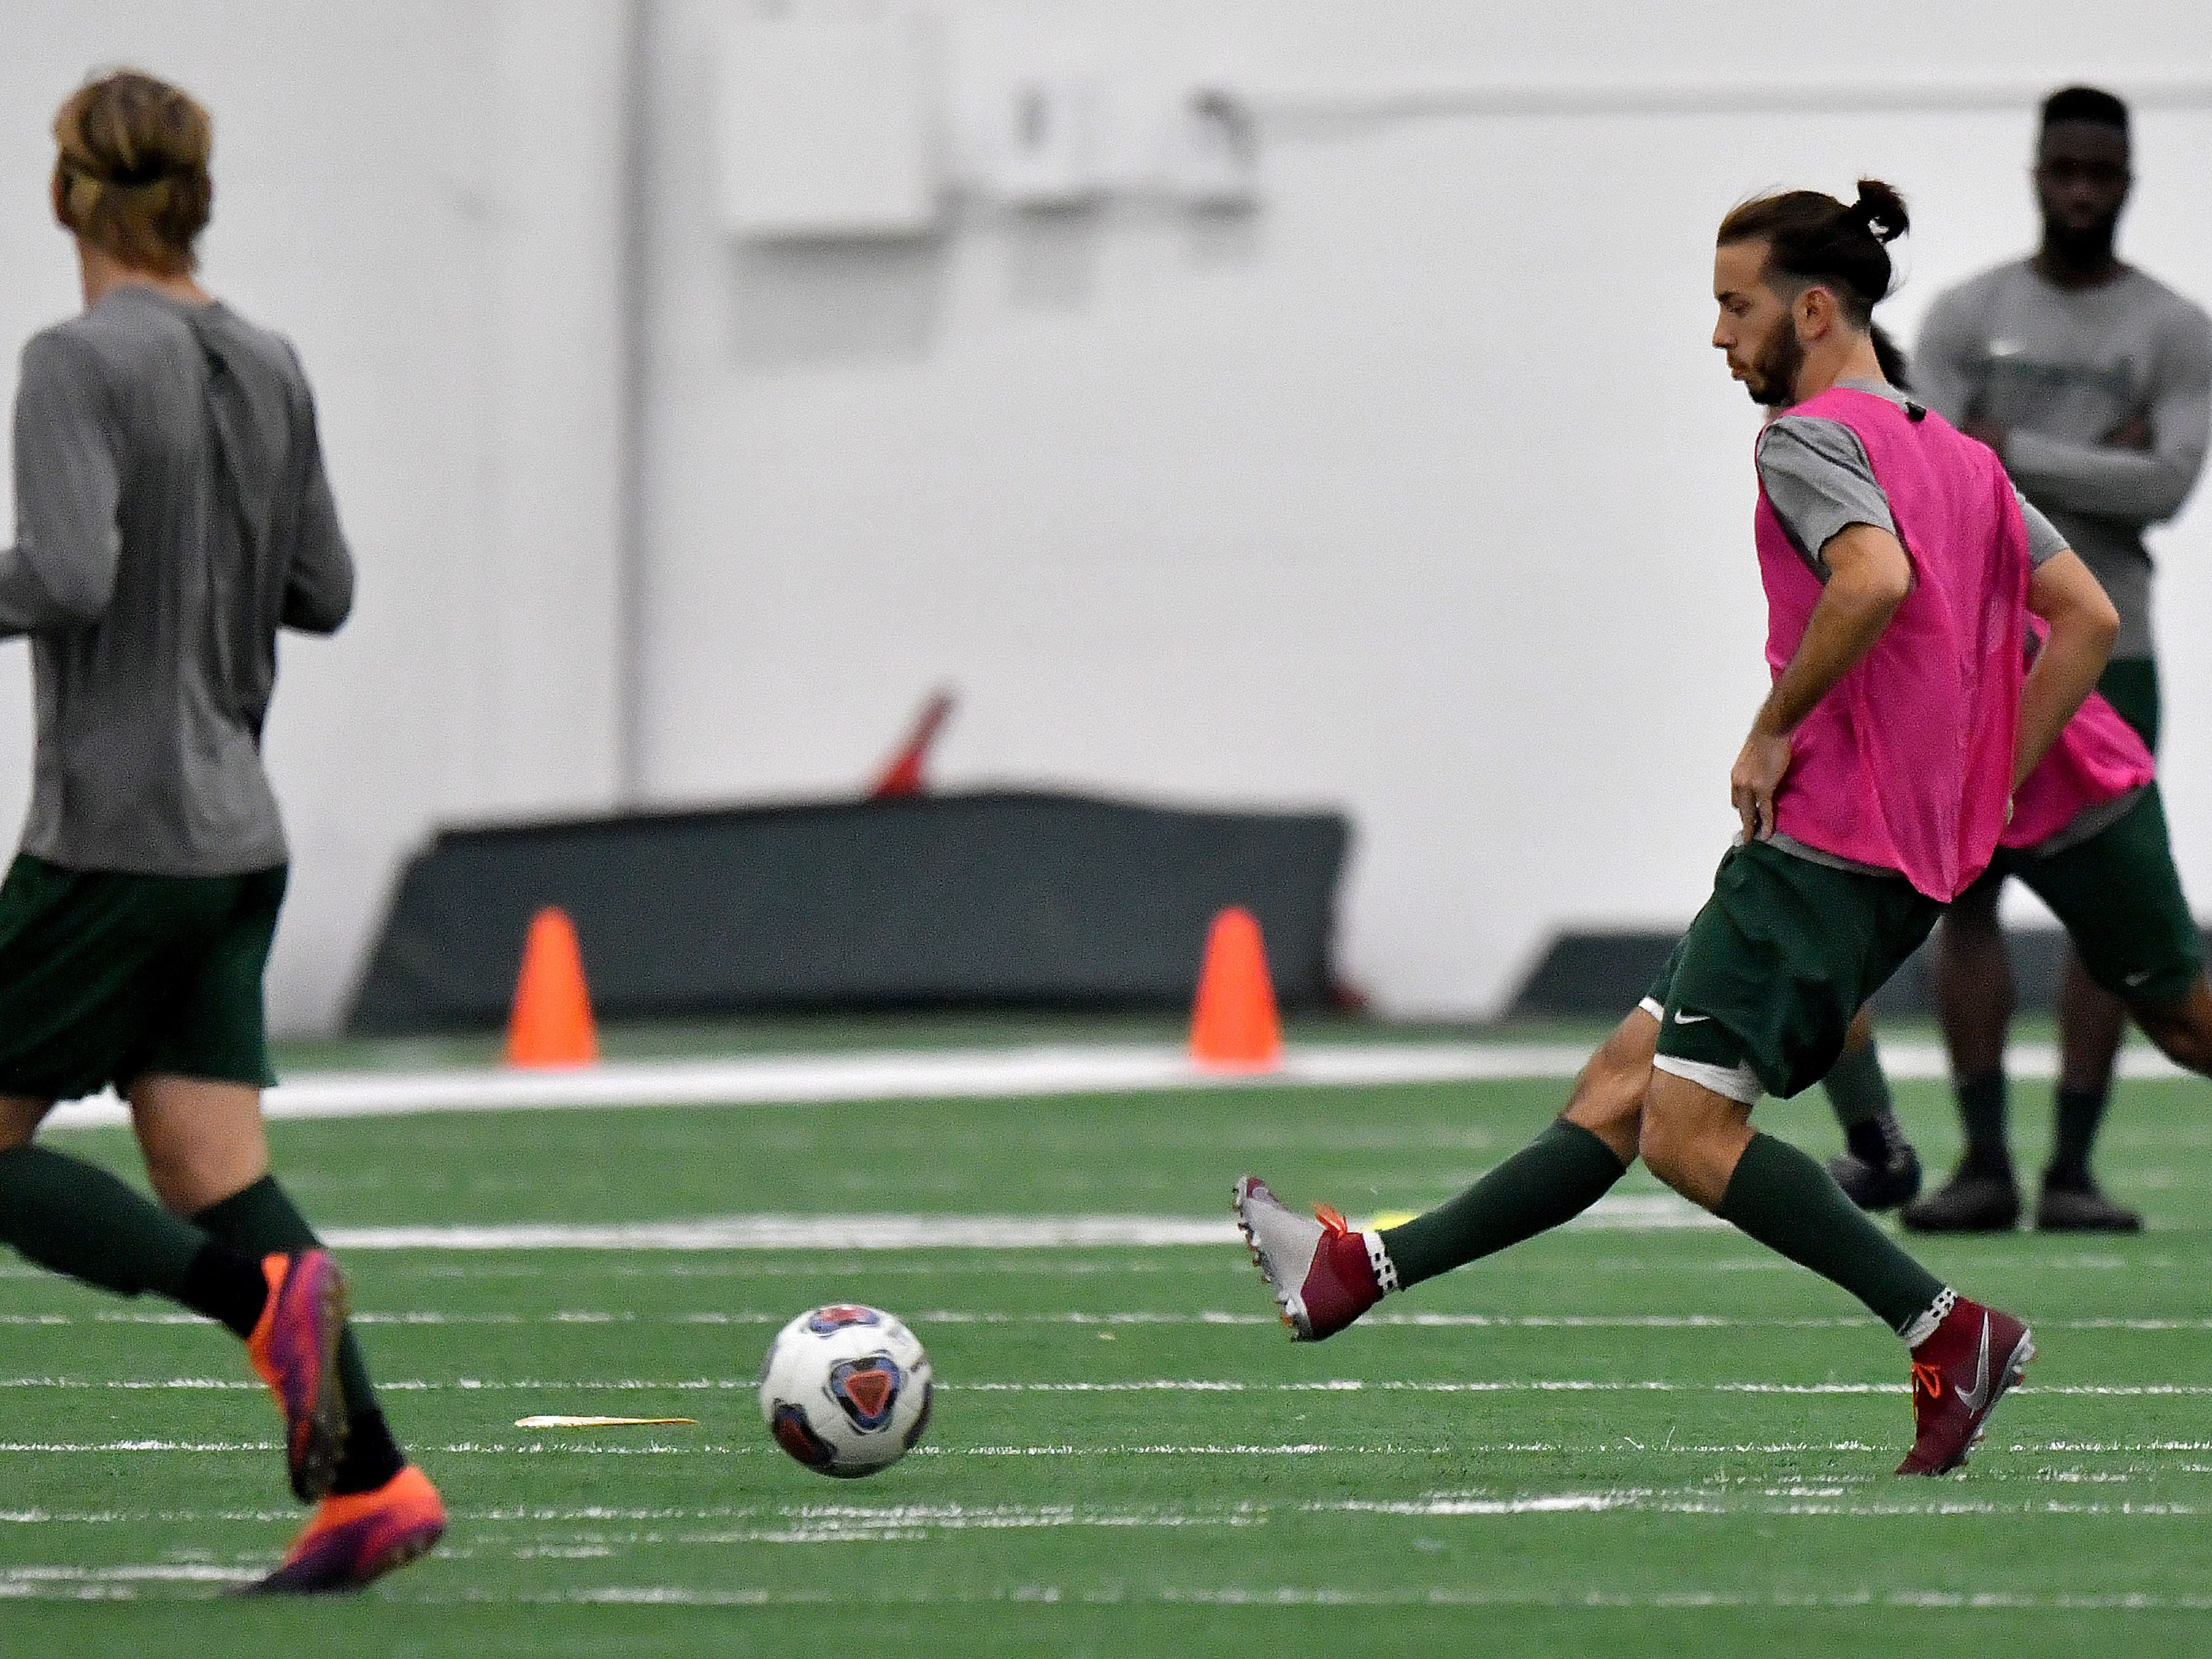 Giuiseppe Barone passes the ball during drills at the Duffy Daugherty Building.